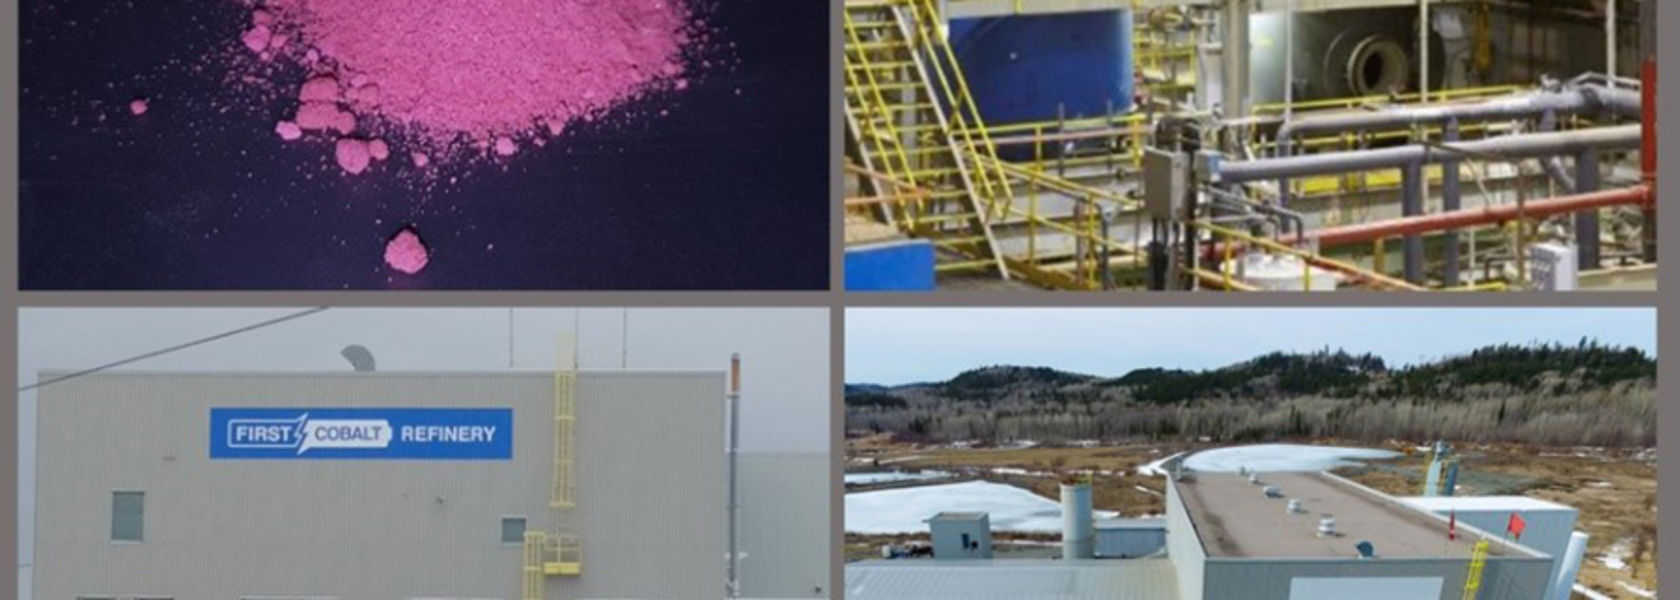 Glencore gets behind First Cobalt in refinery endeavour